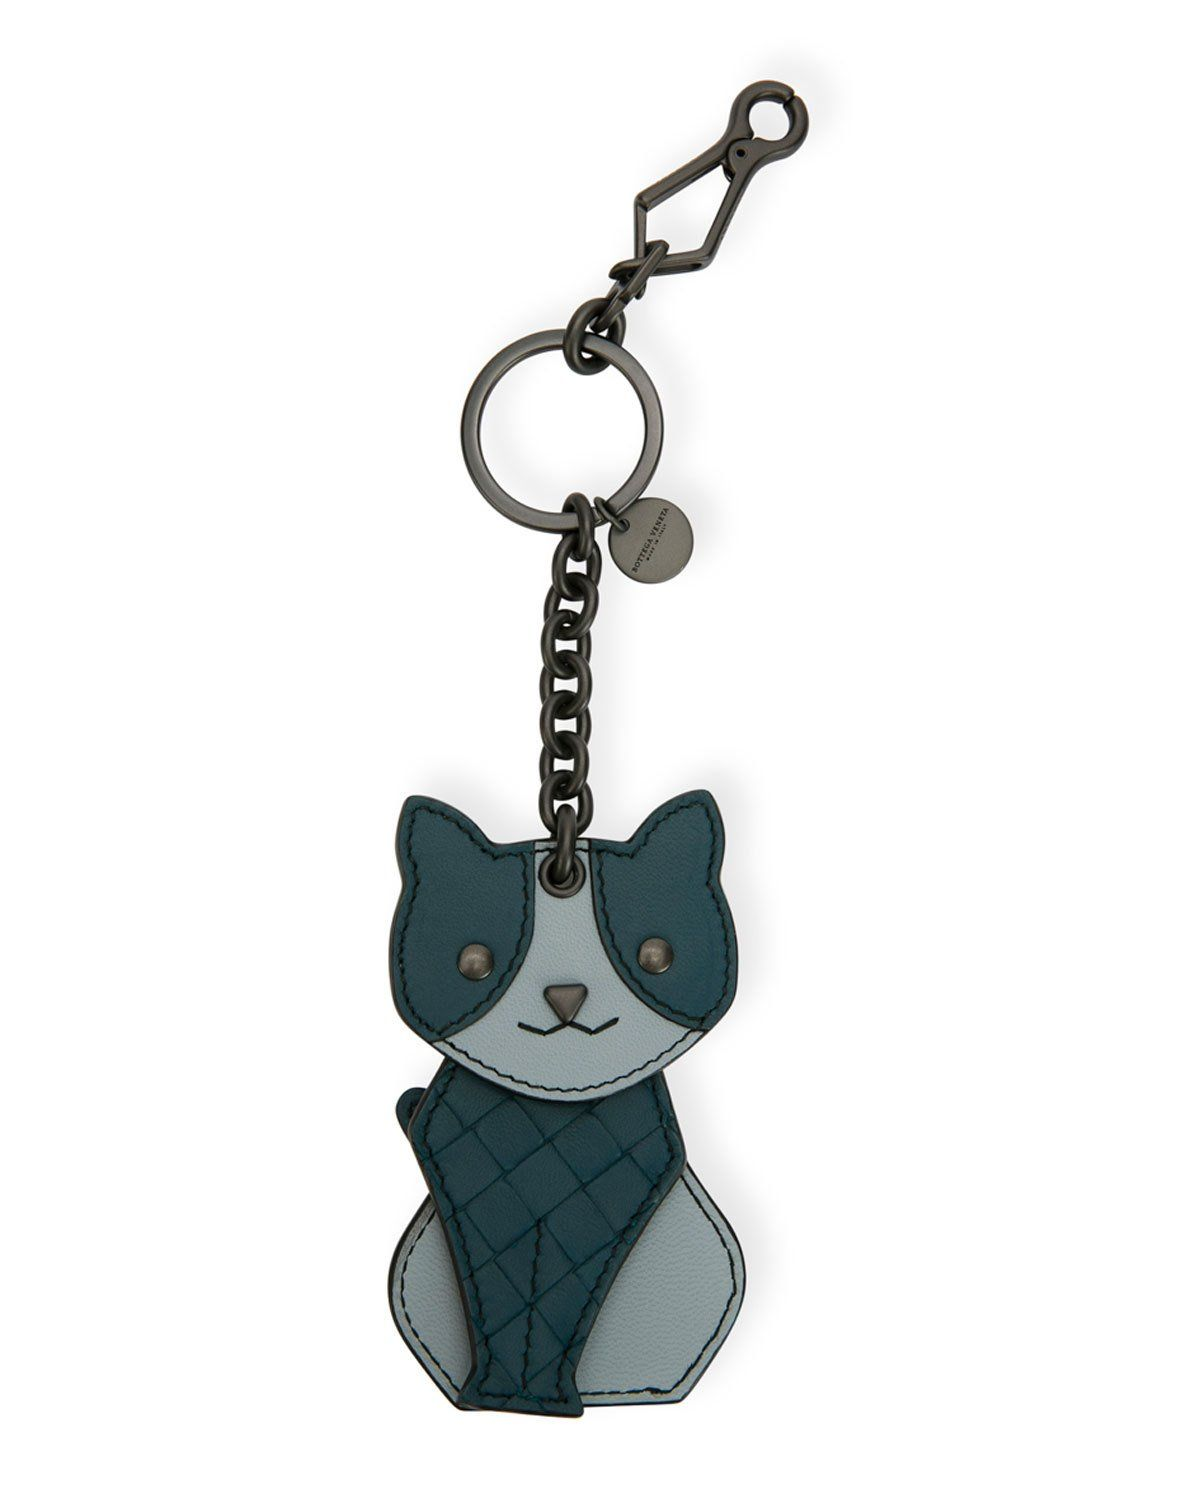 Bottega leather cat key chain charm wallets for